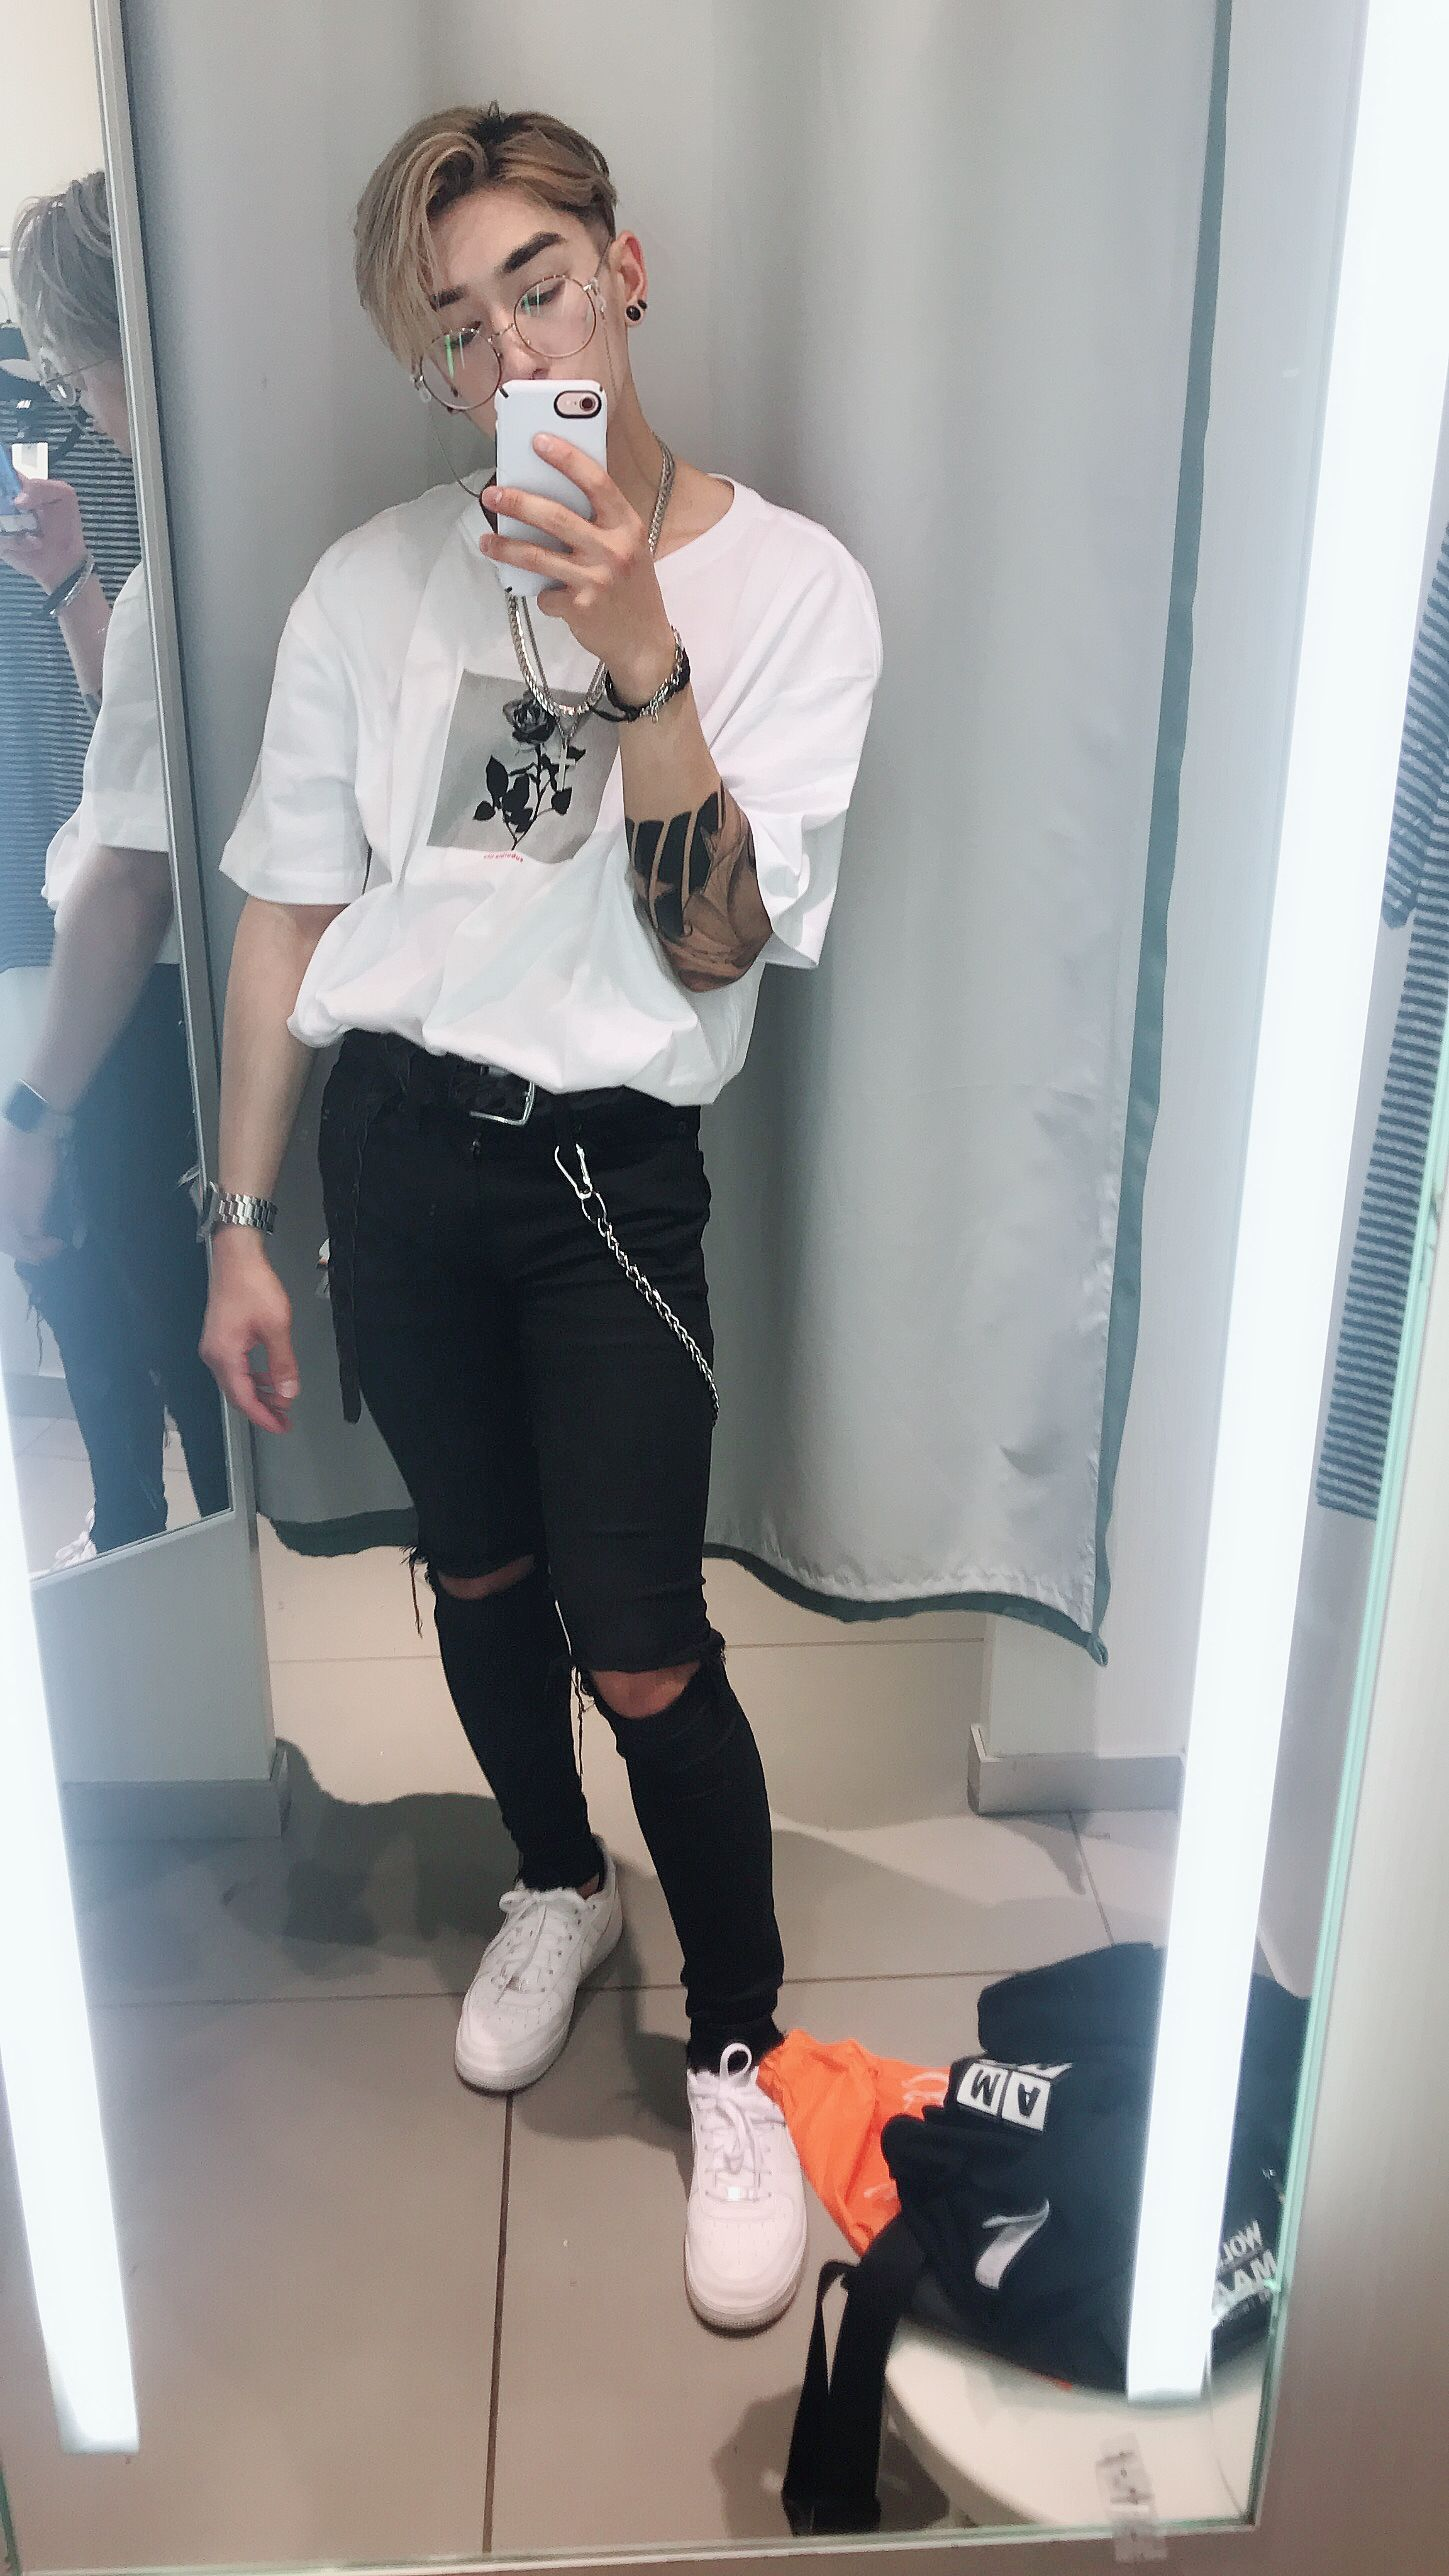 Nike Air Force 1, Ripped Jeans, Wallet Chain, Tattooed